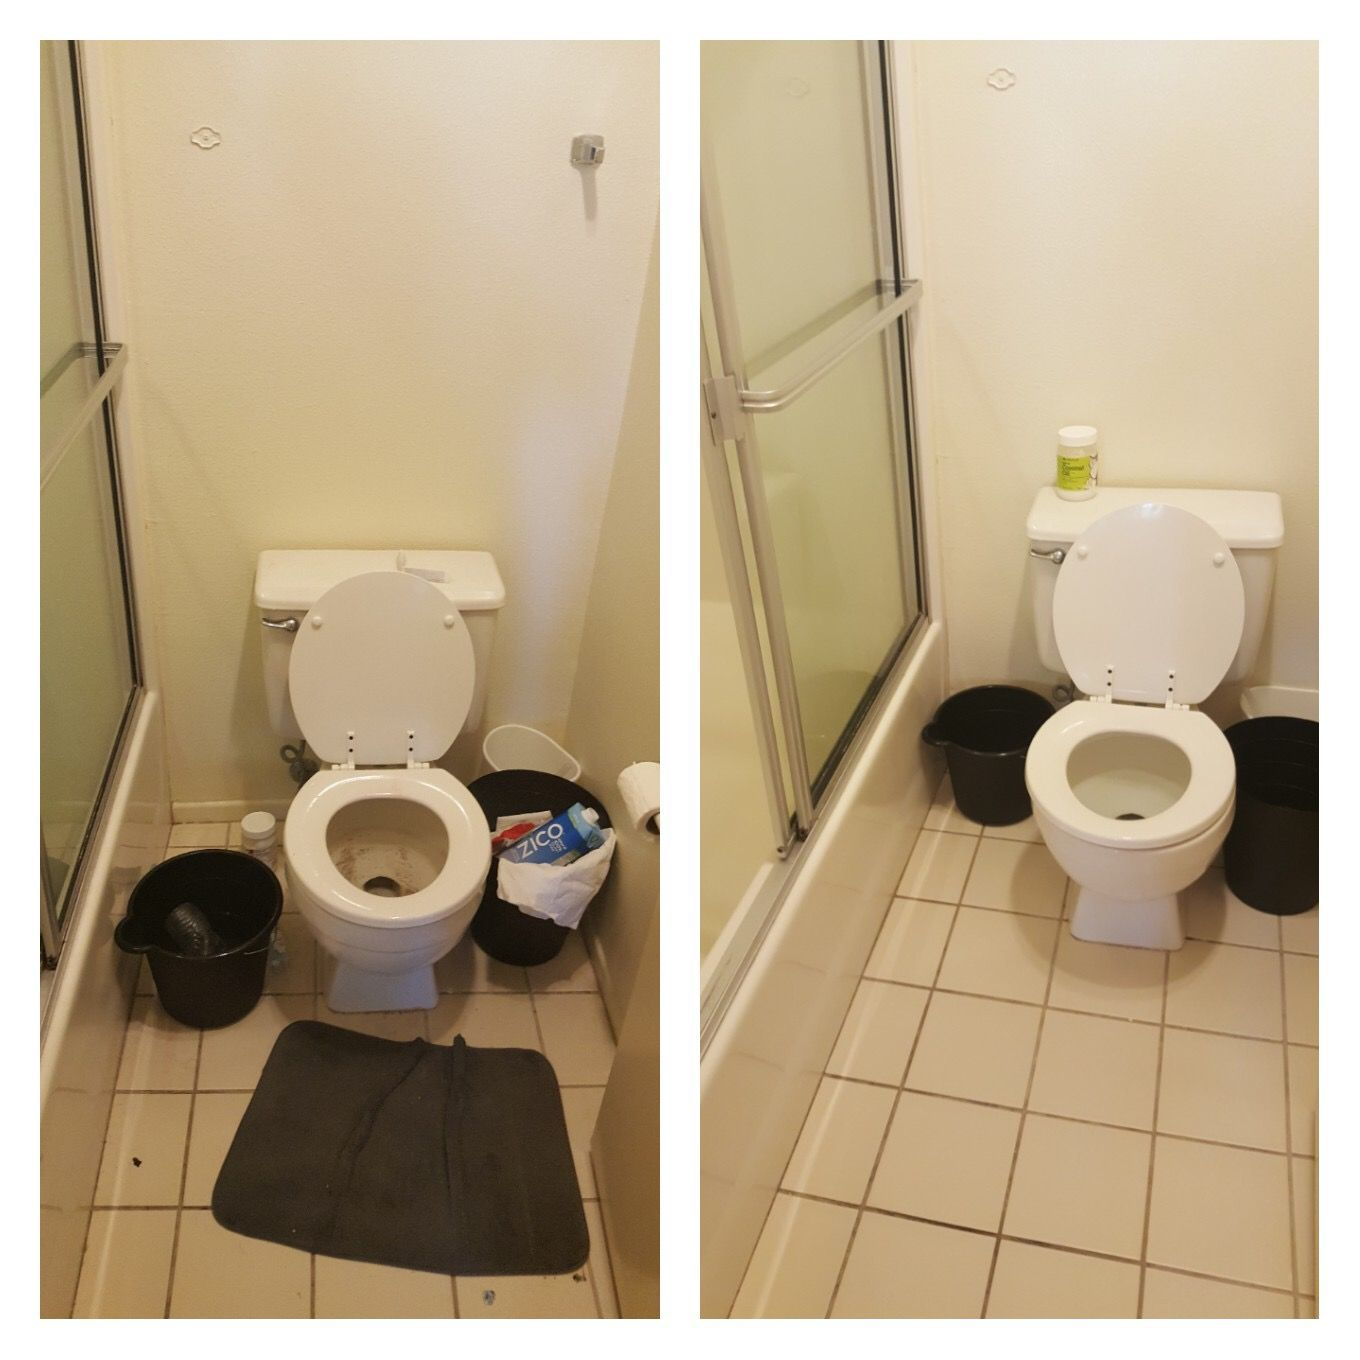 Bathroom Cleaning Before And After Quality Cleaning Services - Home bathroom cleaning service